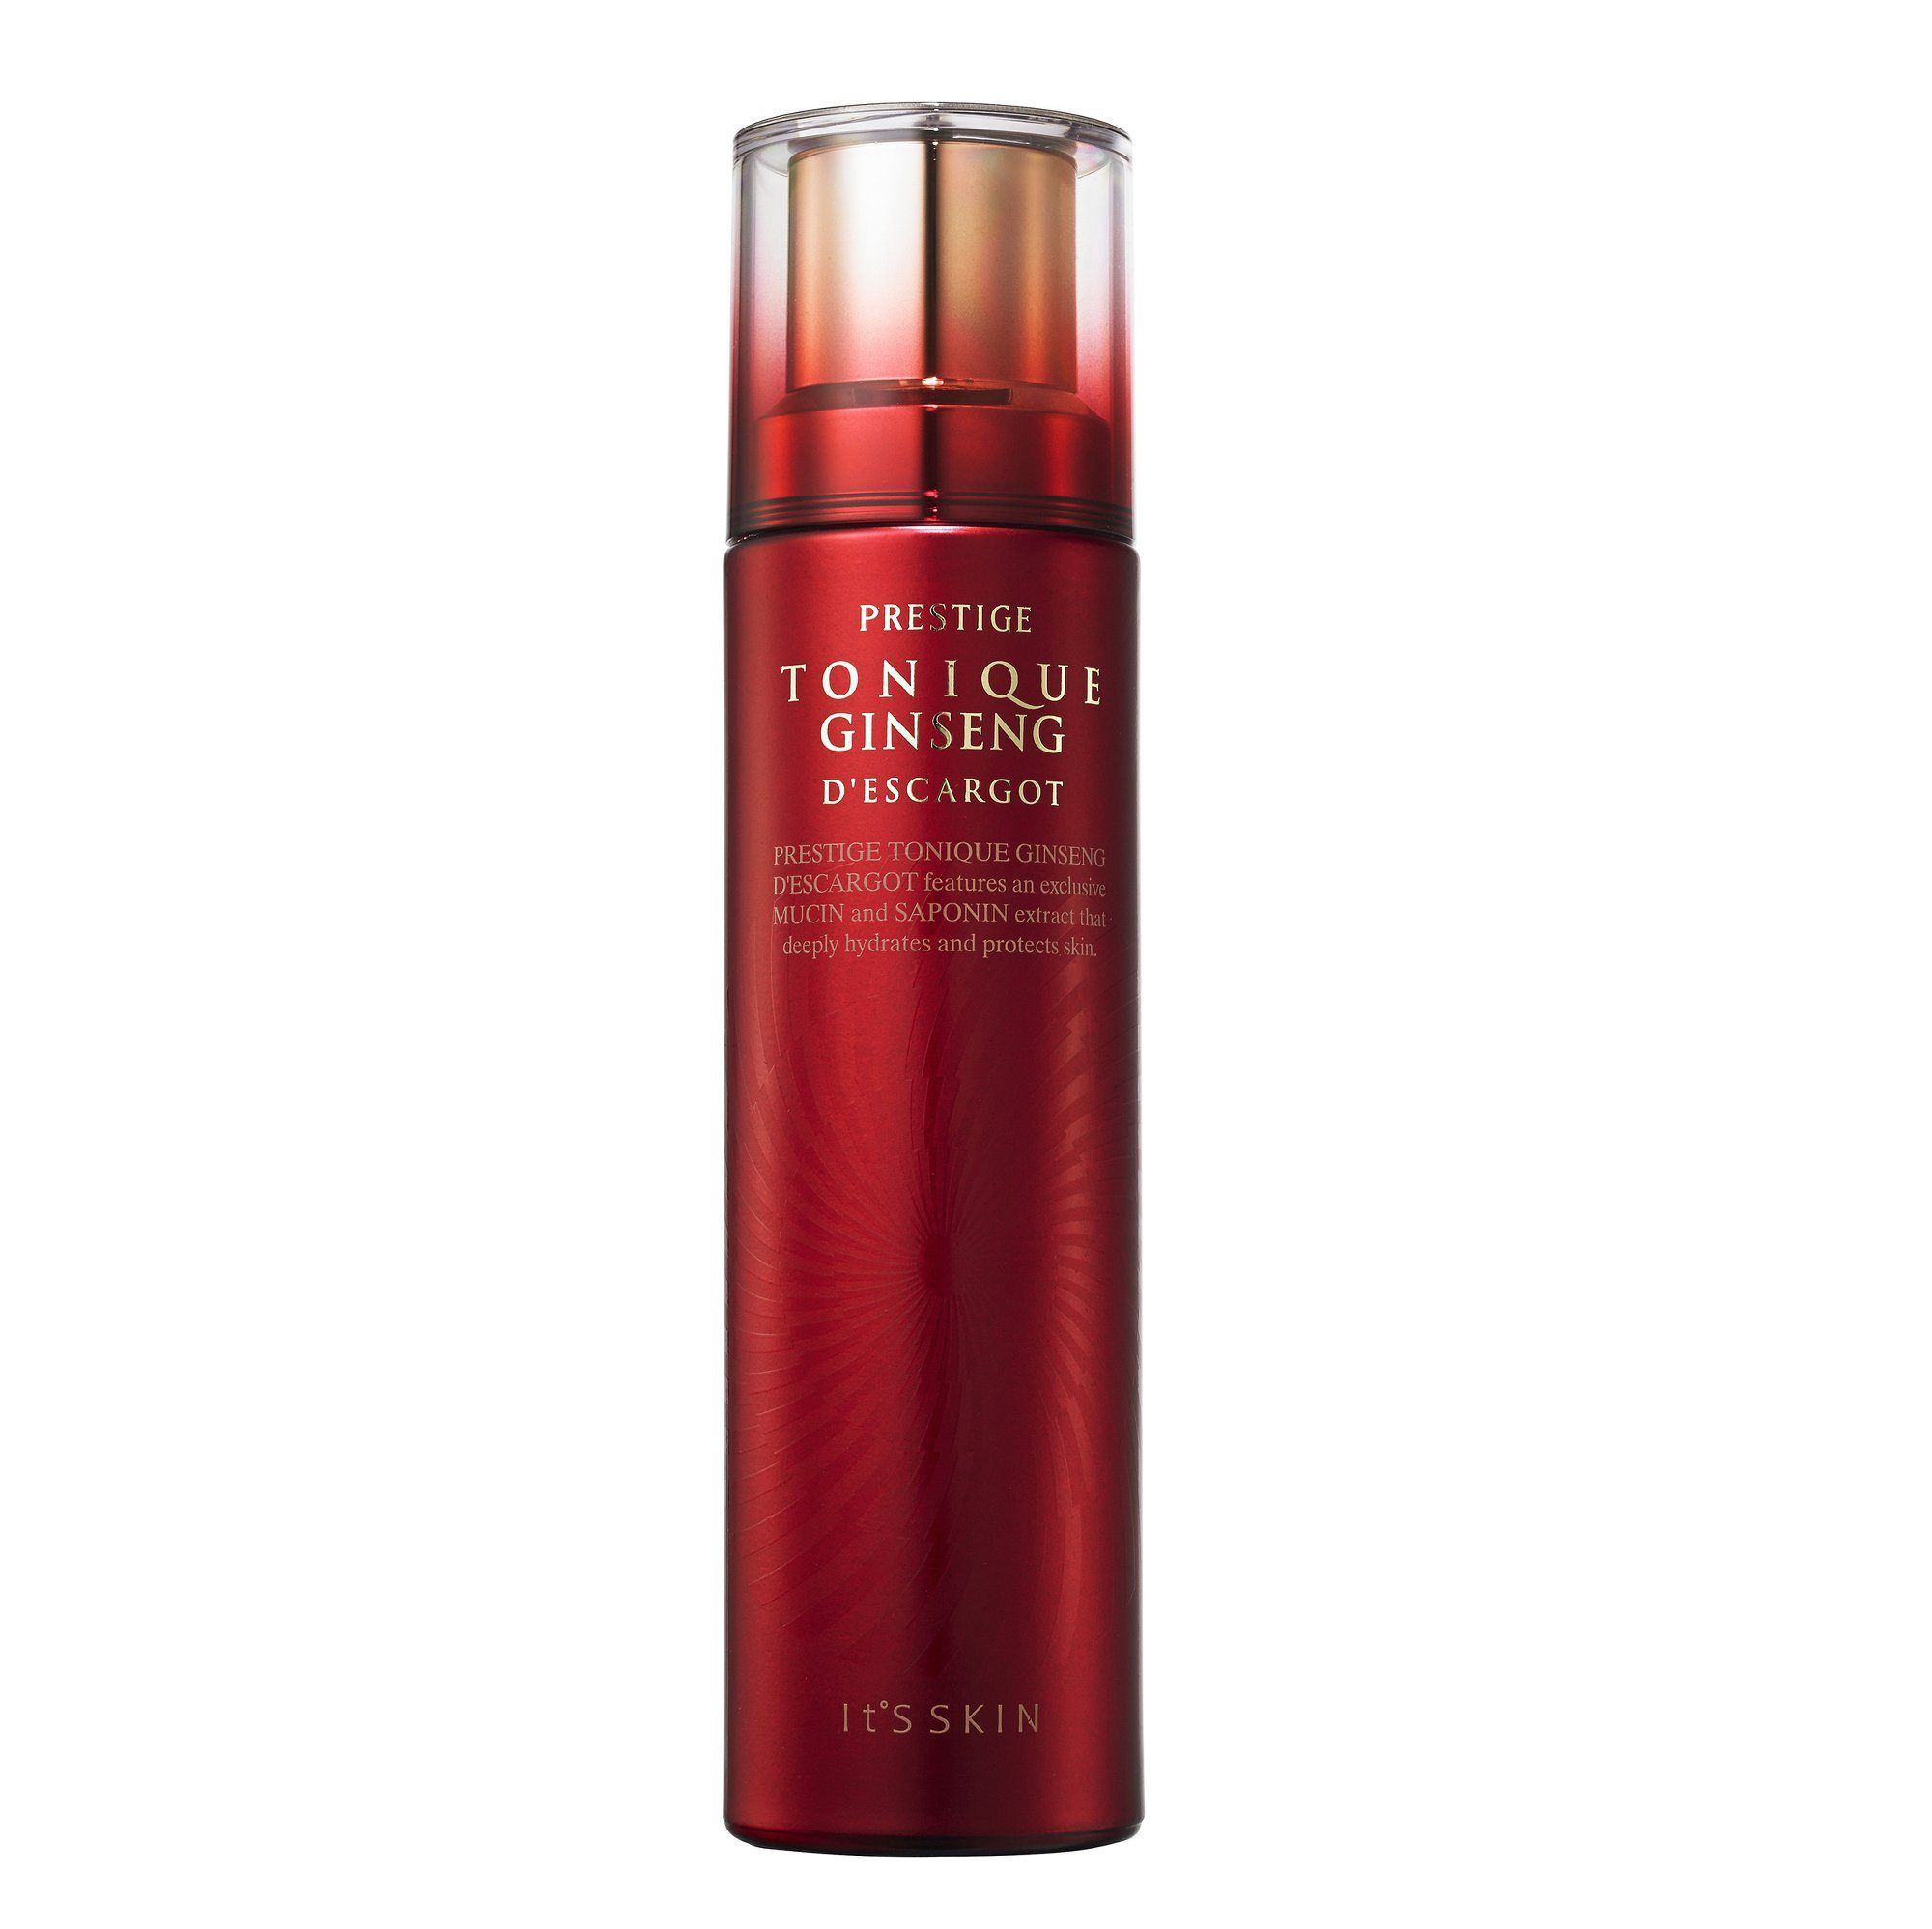 Health & Beauty > Personal Care > Cosmetics > Skin Care > Toners & Astringents > Toners - Prestige Tonique Ginseng D'Escargot Tonik Do Twarzy 140 Ml